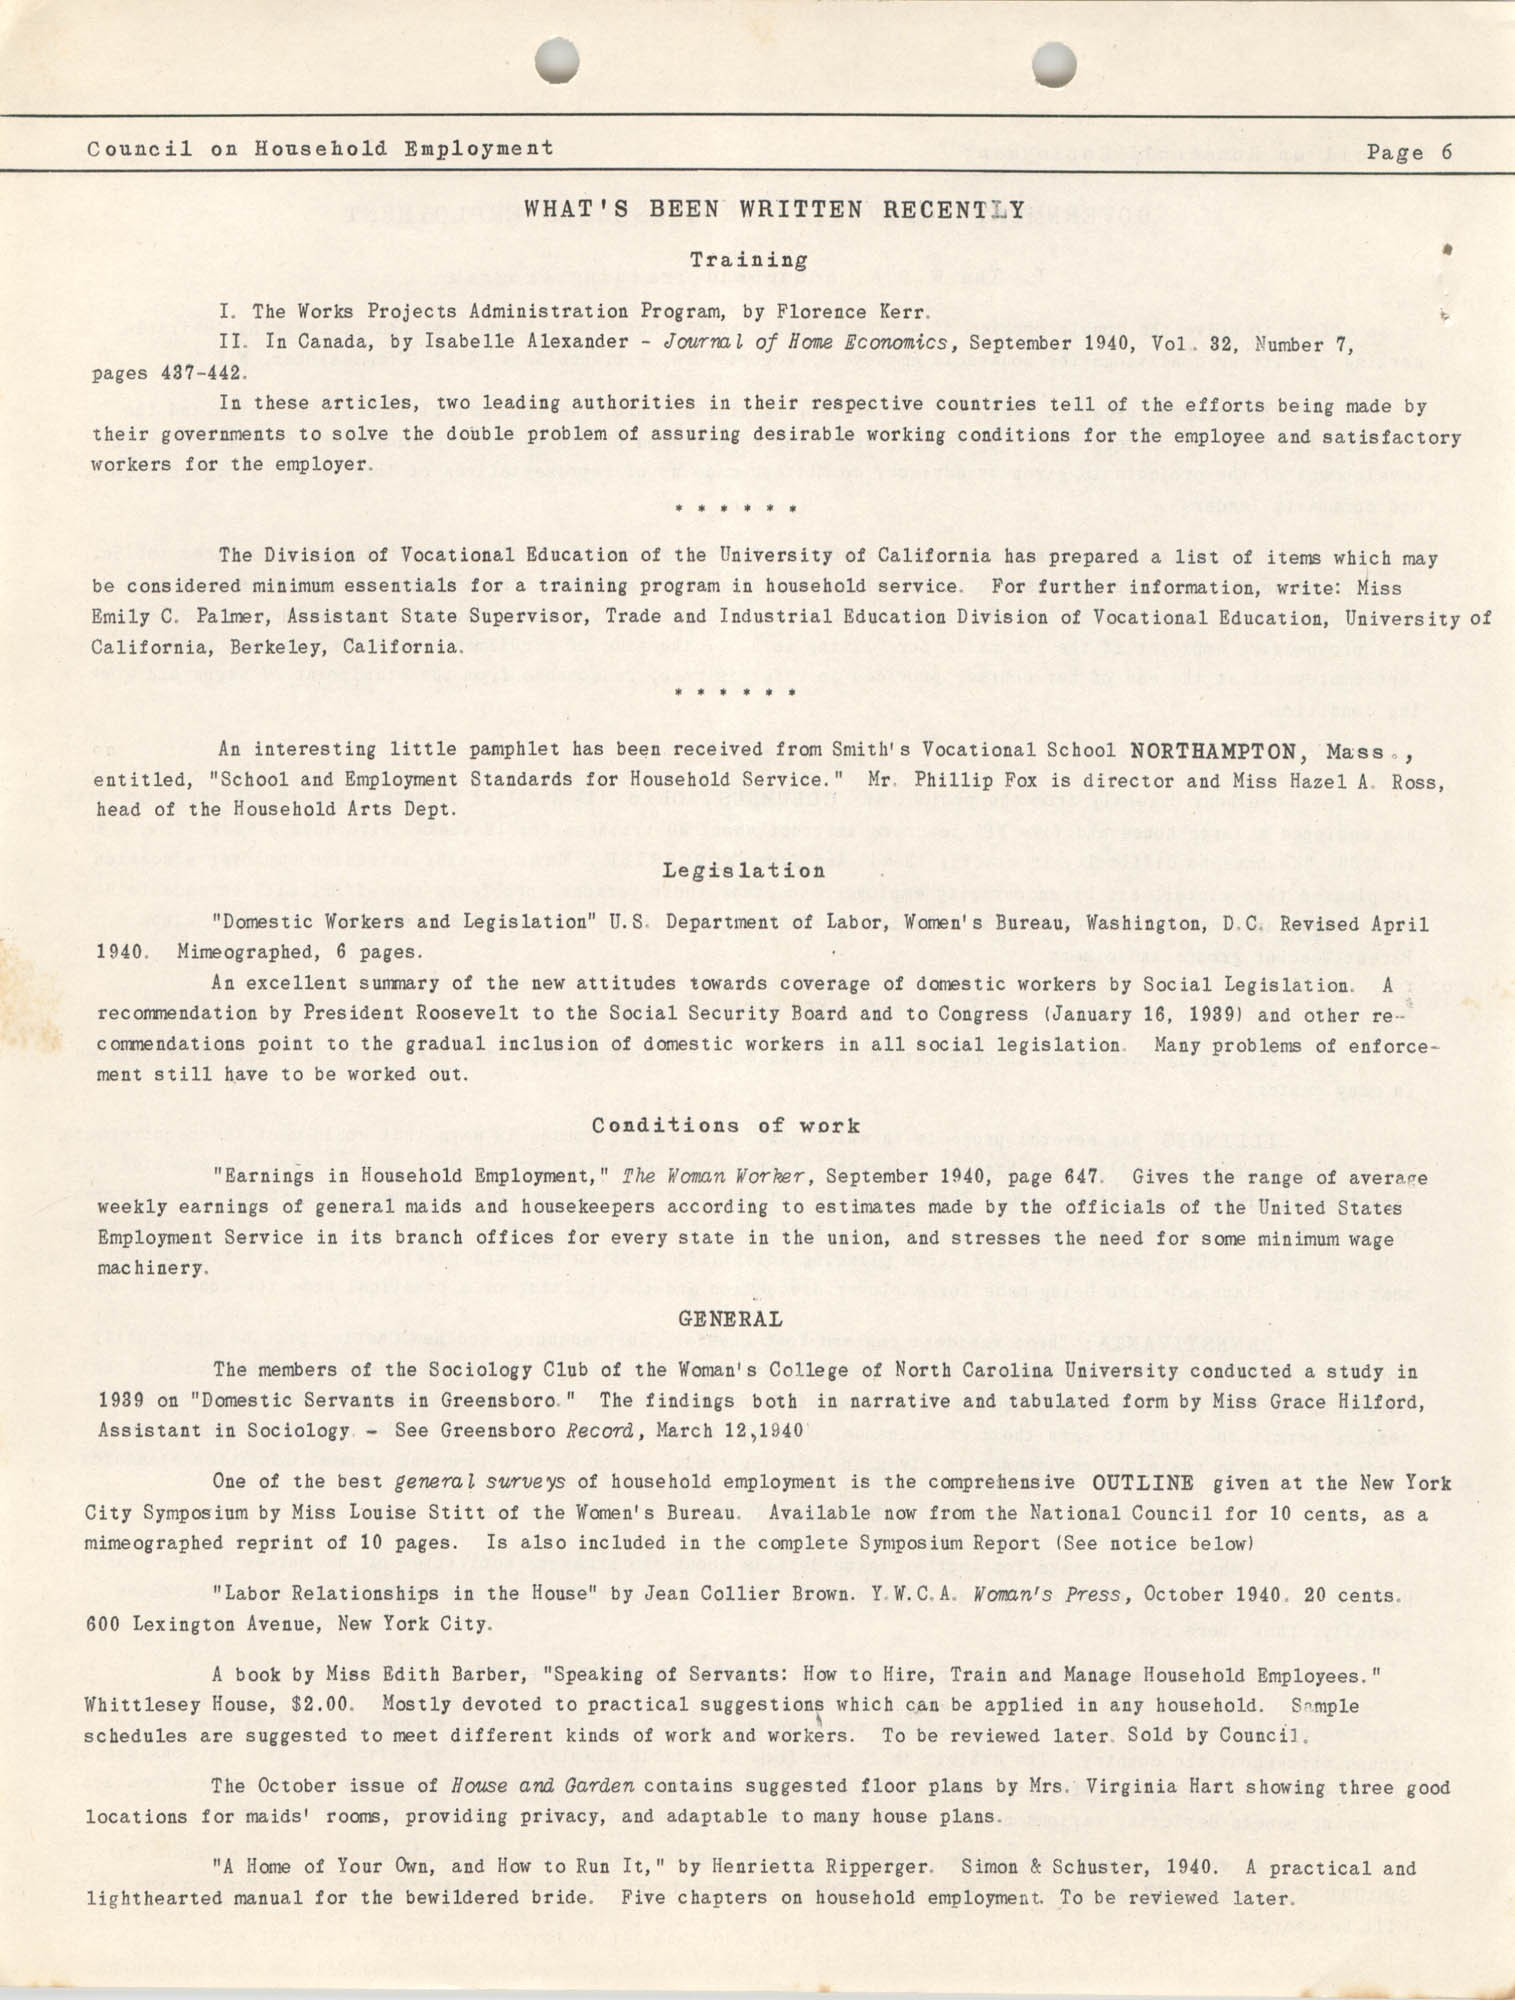 Bulletin of the National Council on Household Employment, Series II, No. 1, December 1940, Page 6